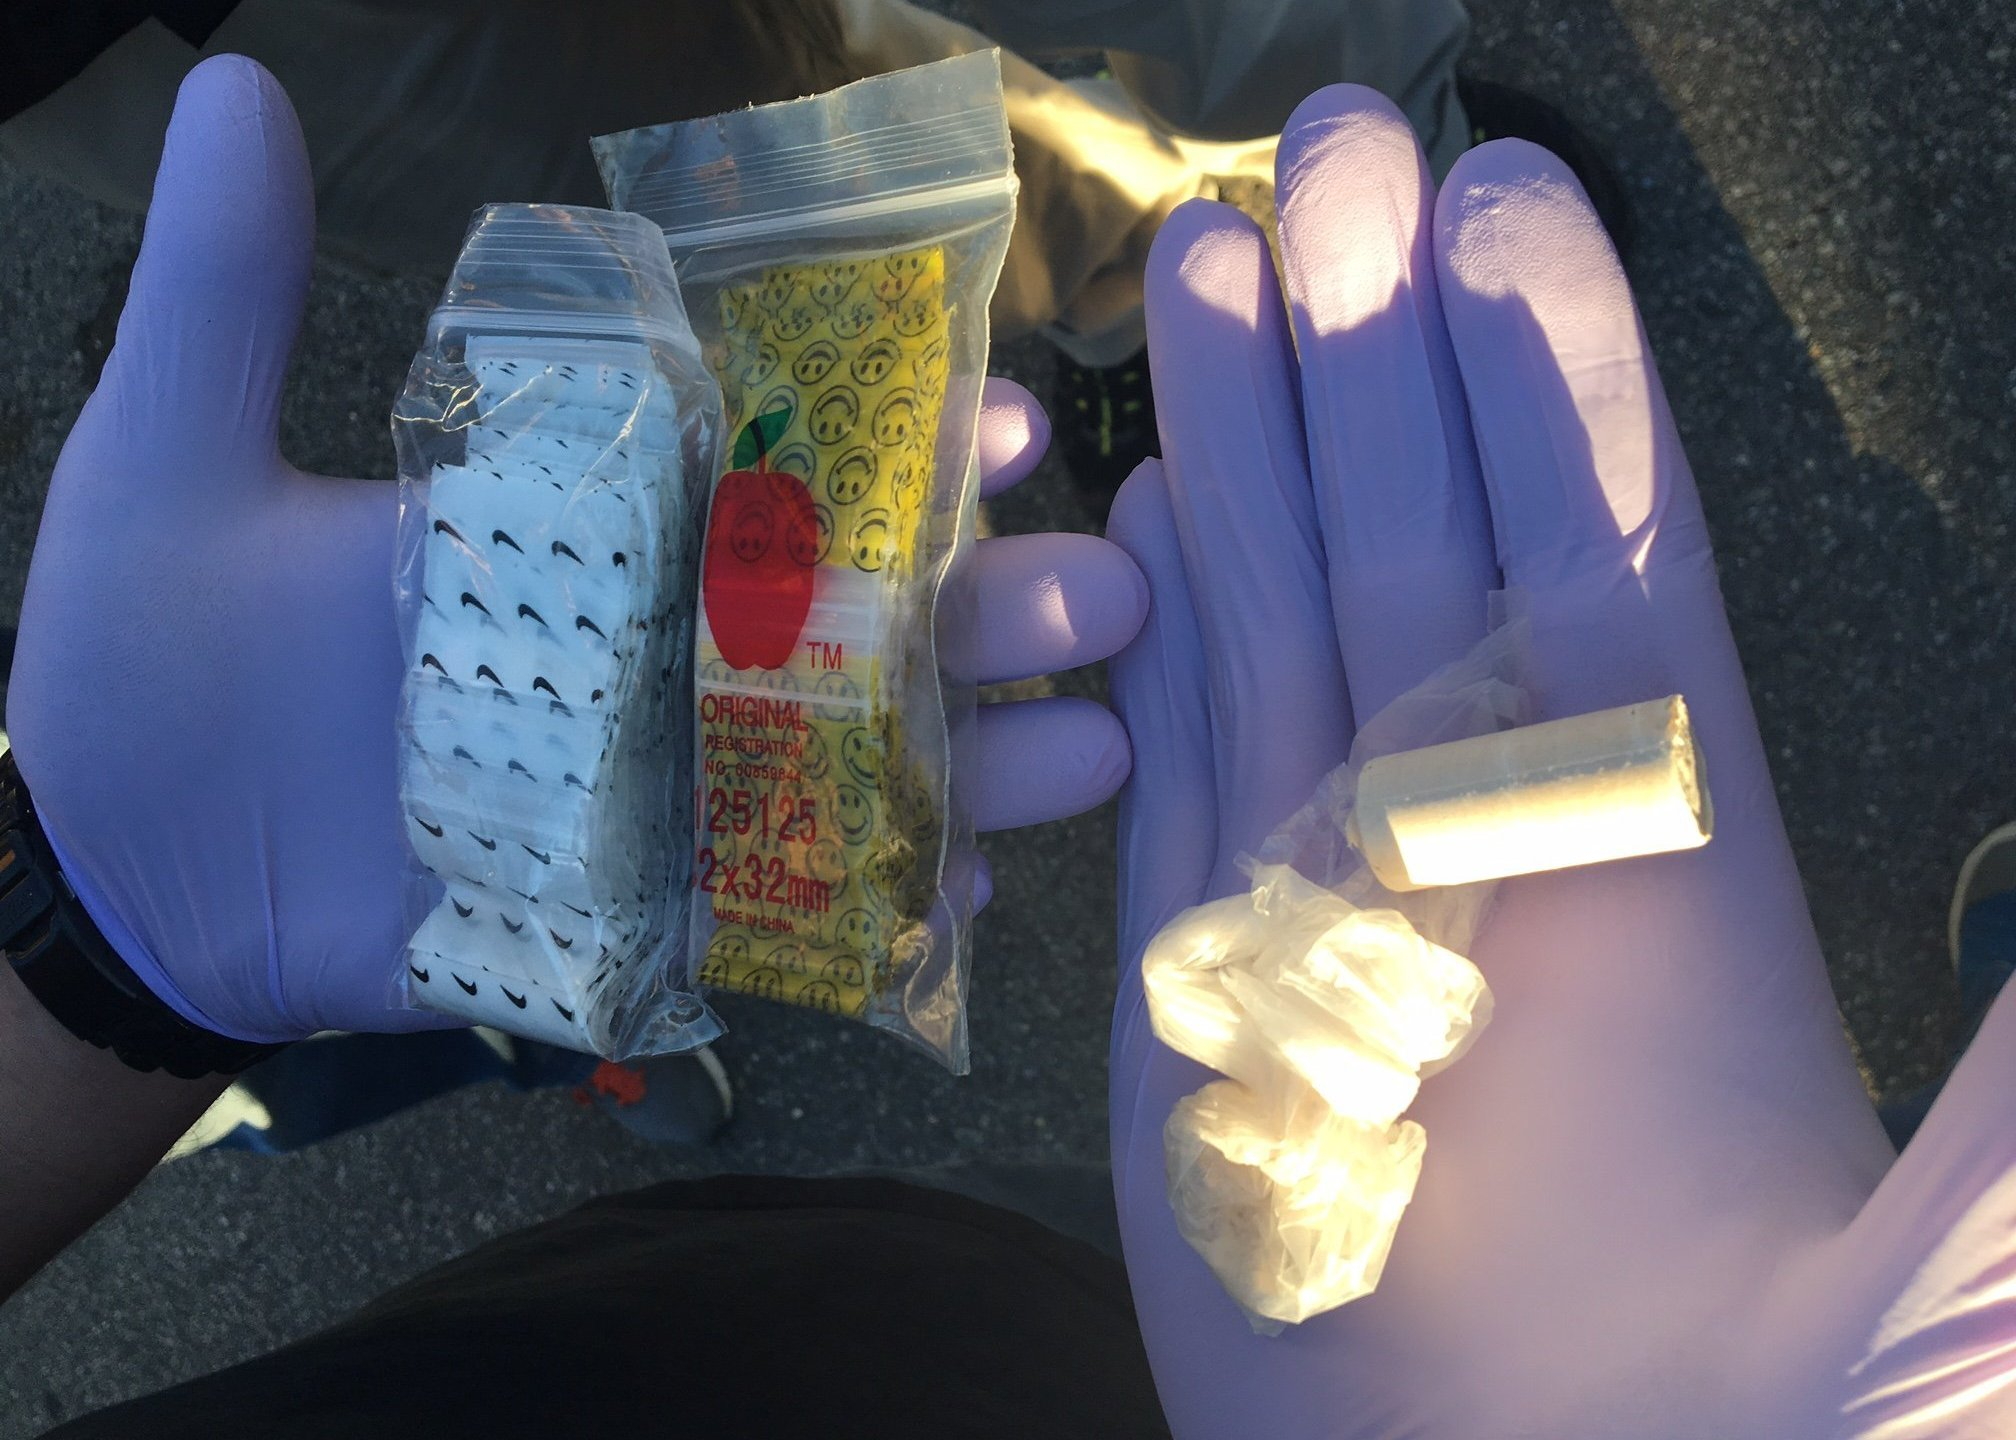 Seized packets of fentanyl are shown in this undated file photo provided by the DEA.